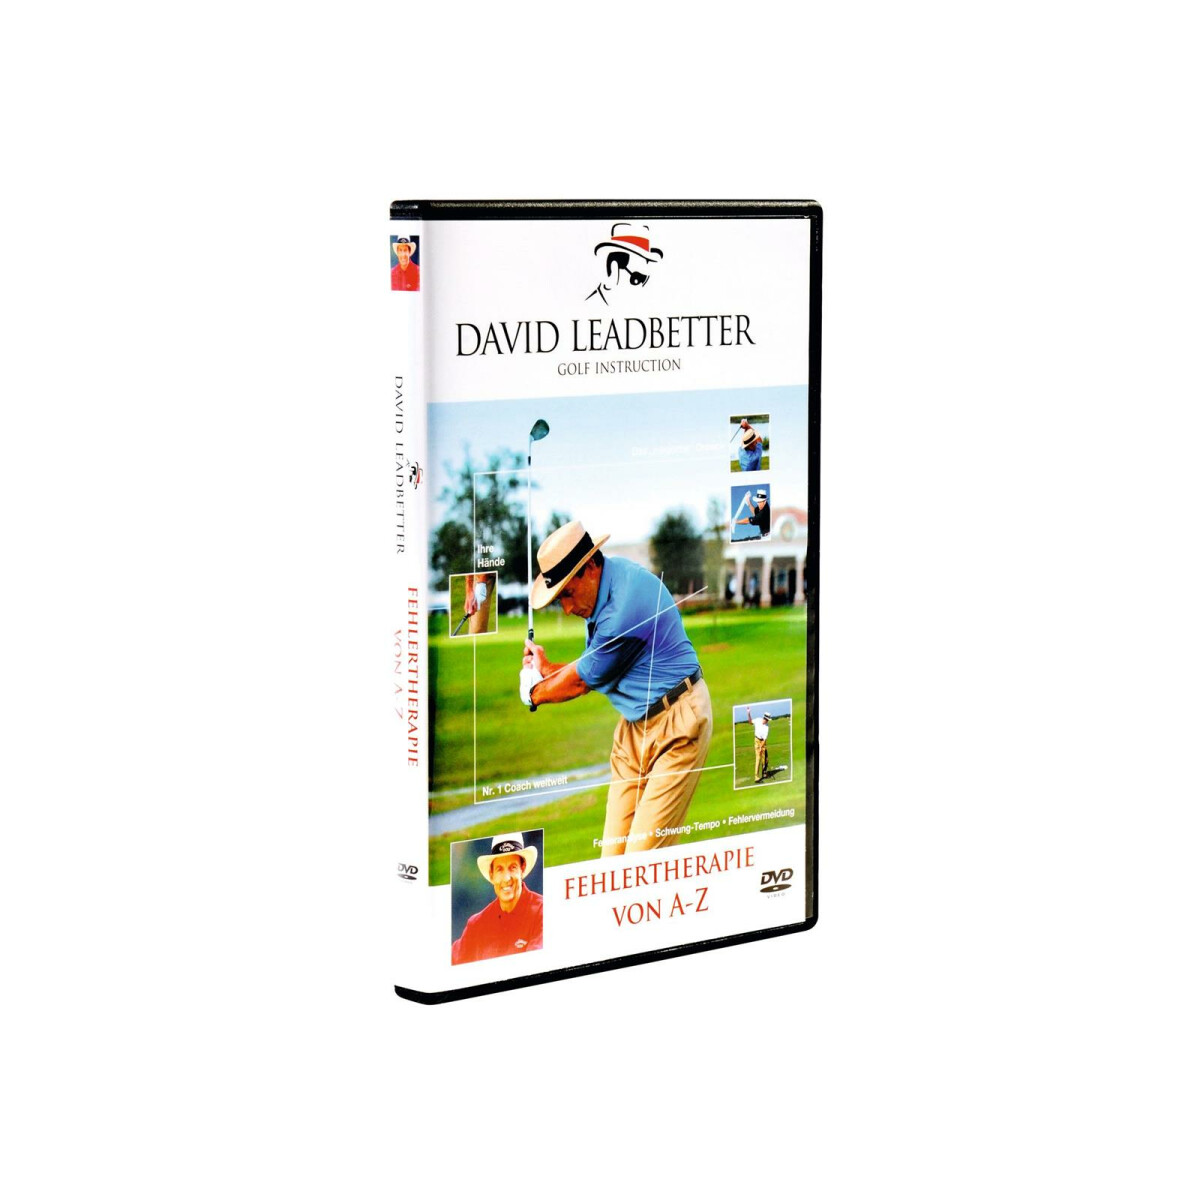 DVD David Leadbetter - Fehlertherapie von A - Z